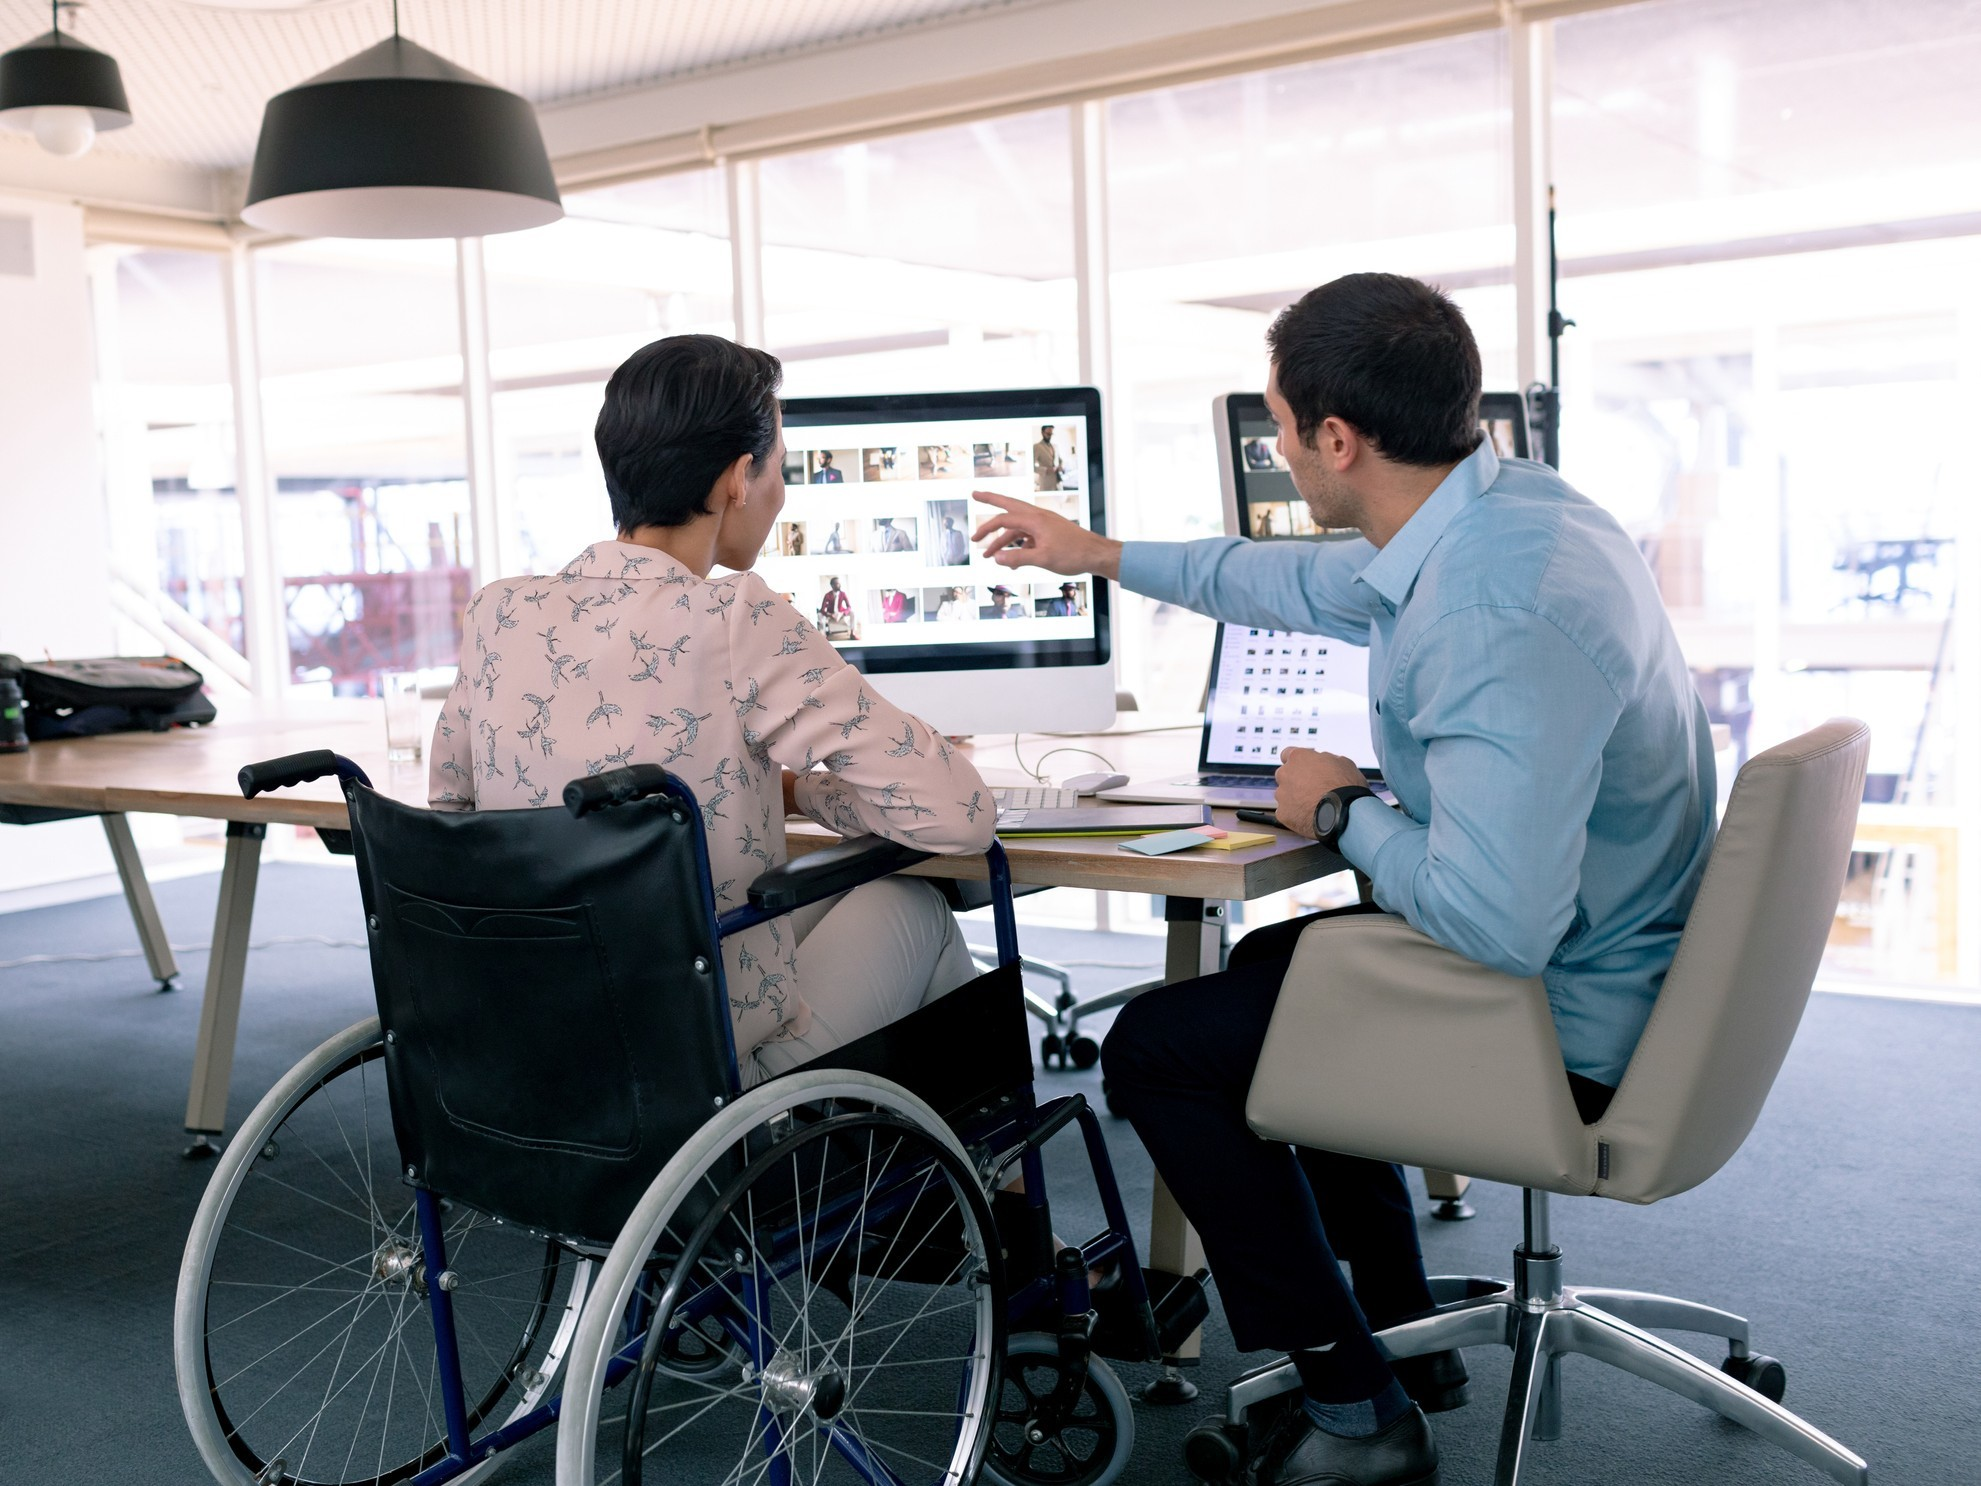 Person with disability learning on the job.